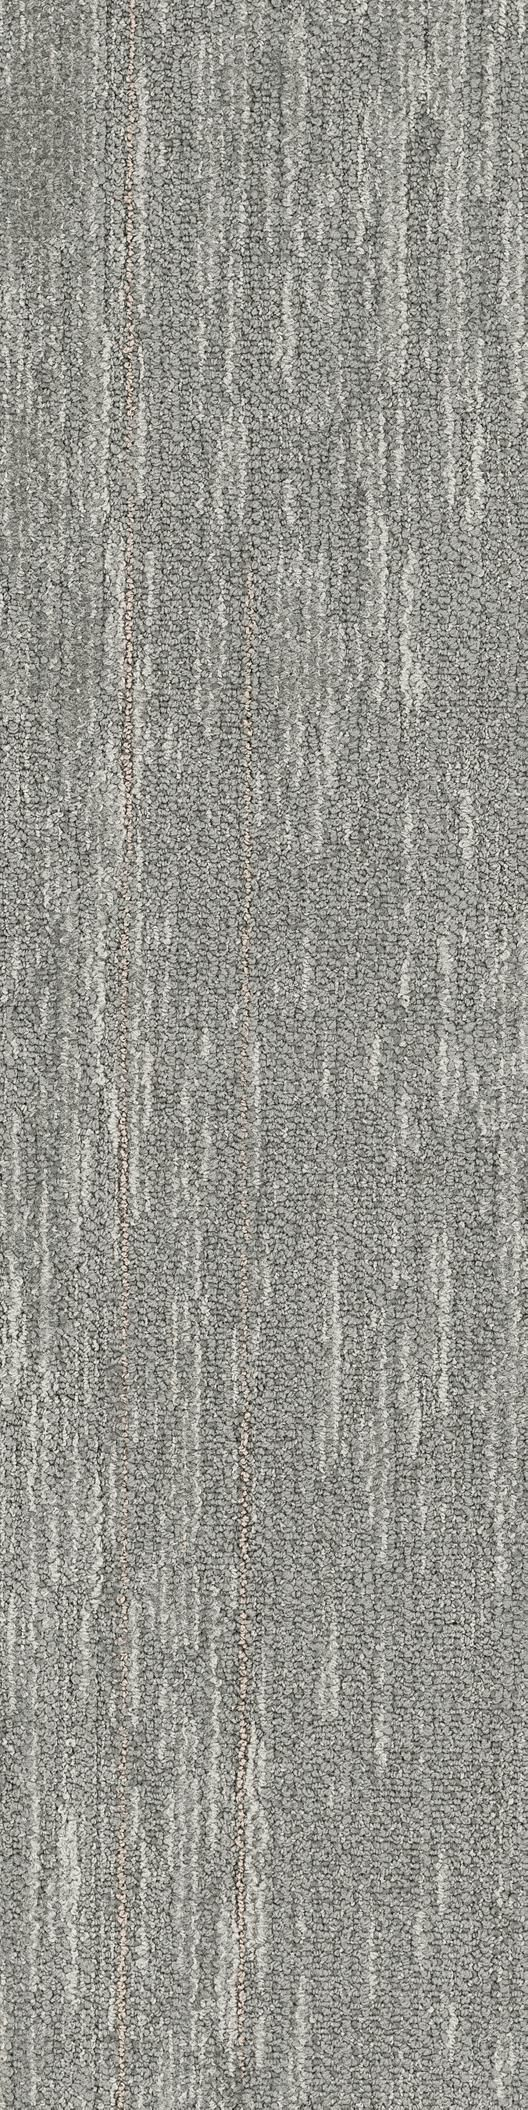 relief tile   5T152   Shaw Contract Group Commercial Carpet and Flooring